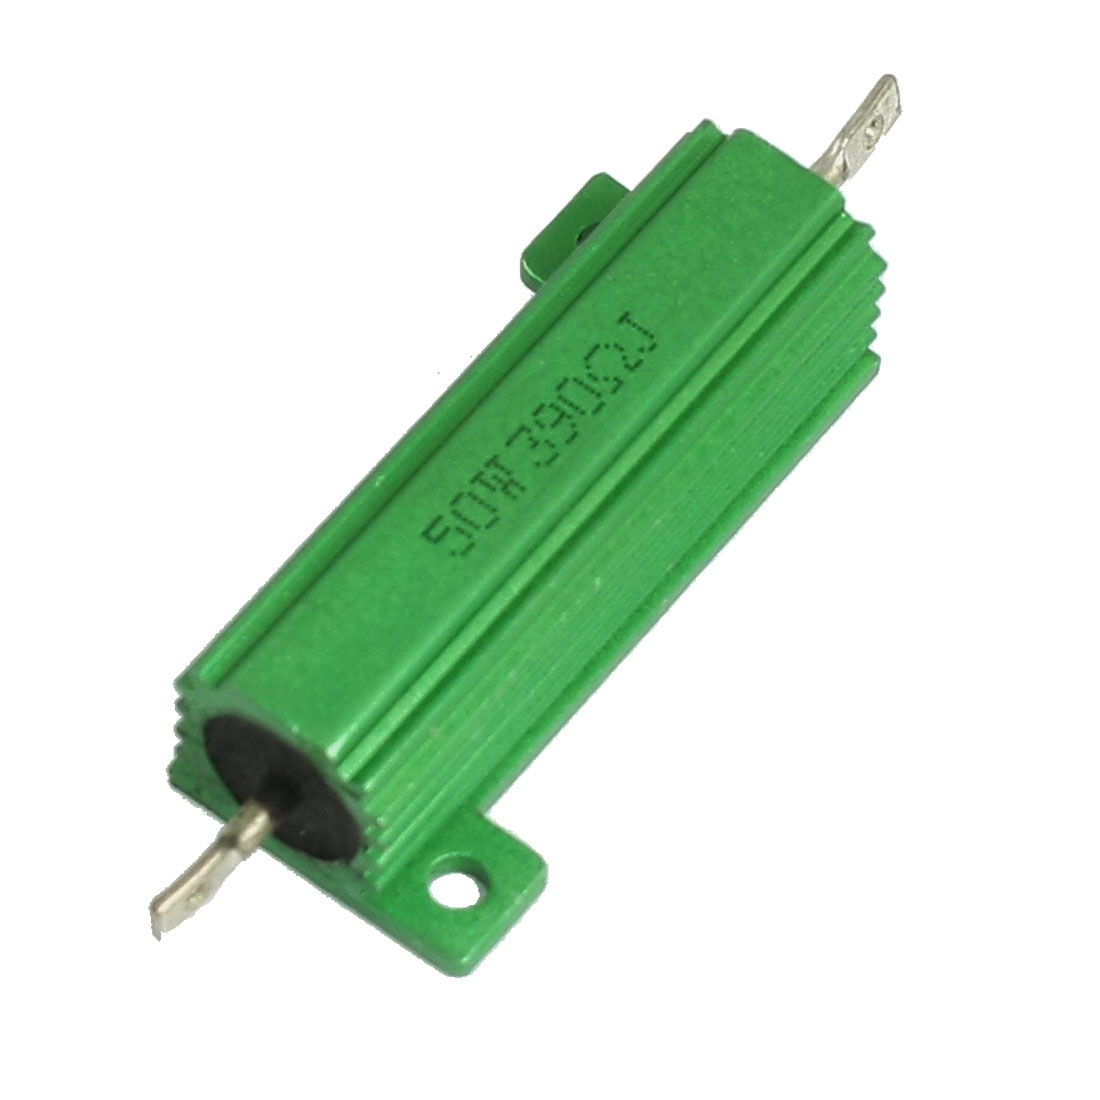 50W 390 Ohm Green Aluminium Chassis Mounted Wirewound Resistor